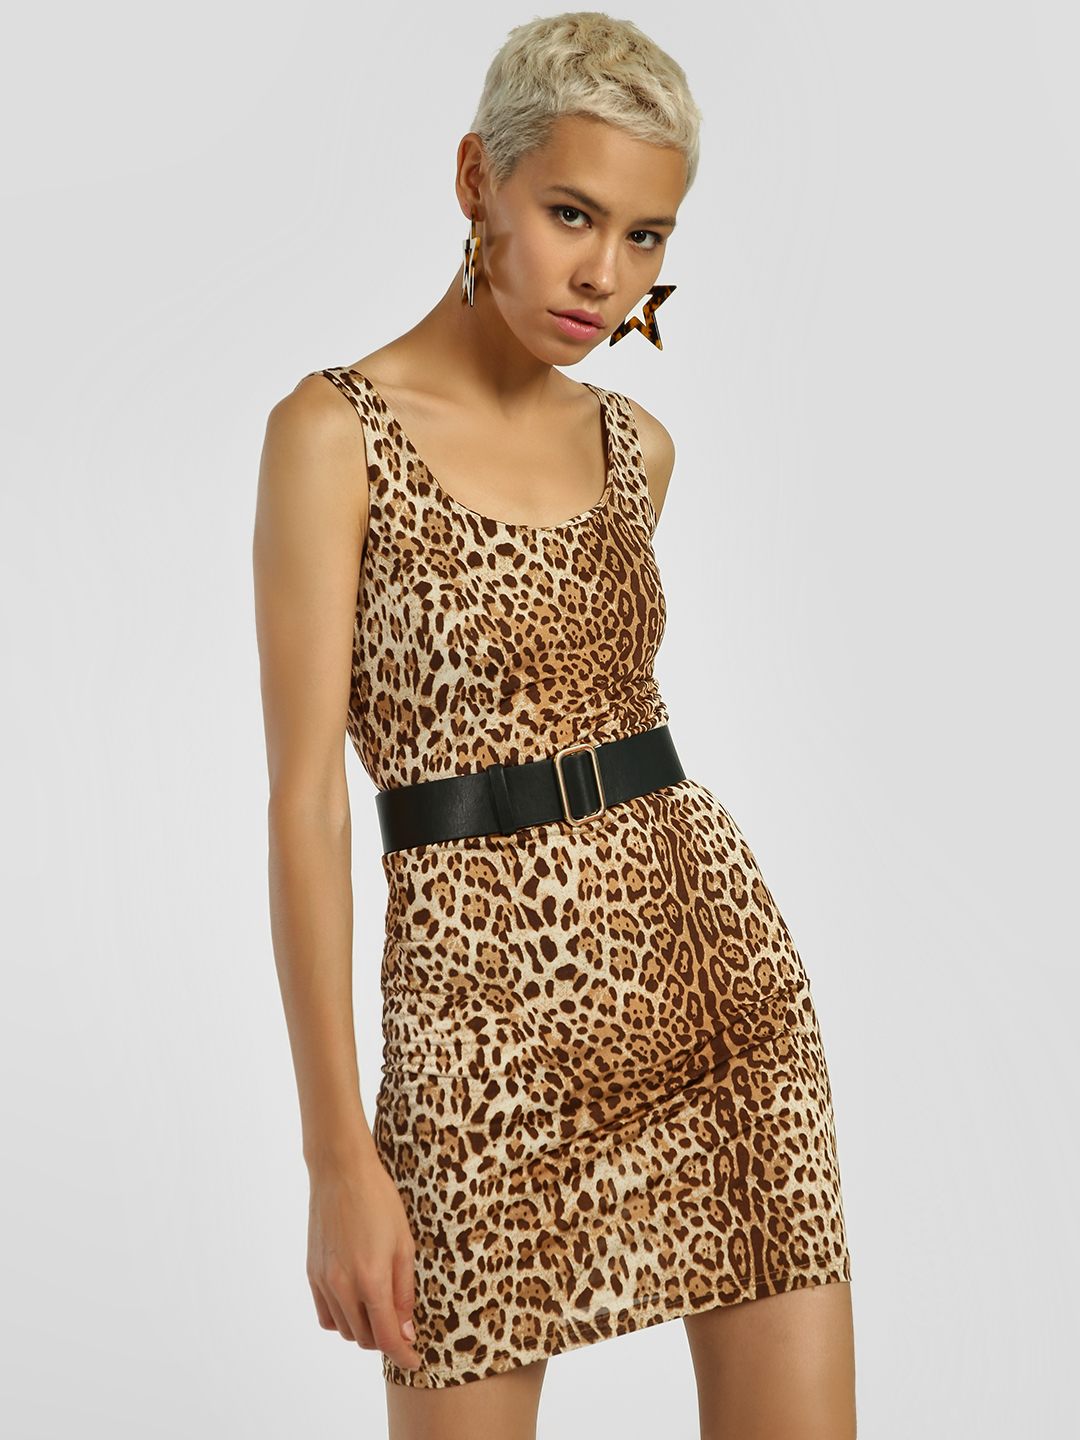 KOOVS Multi Leopard Print Bodycon Dress 1